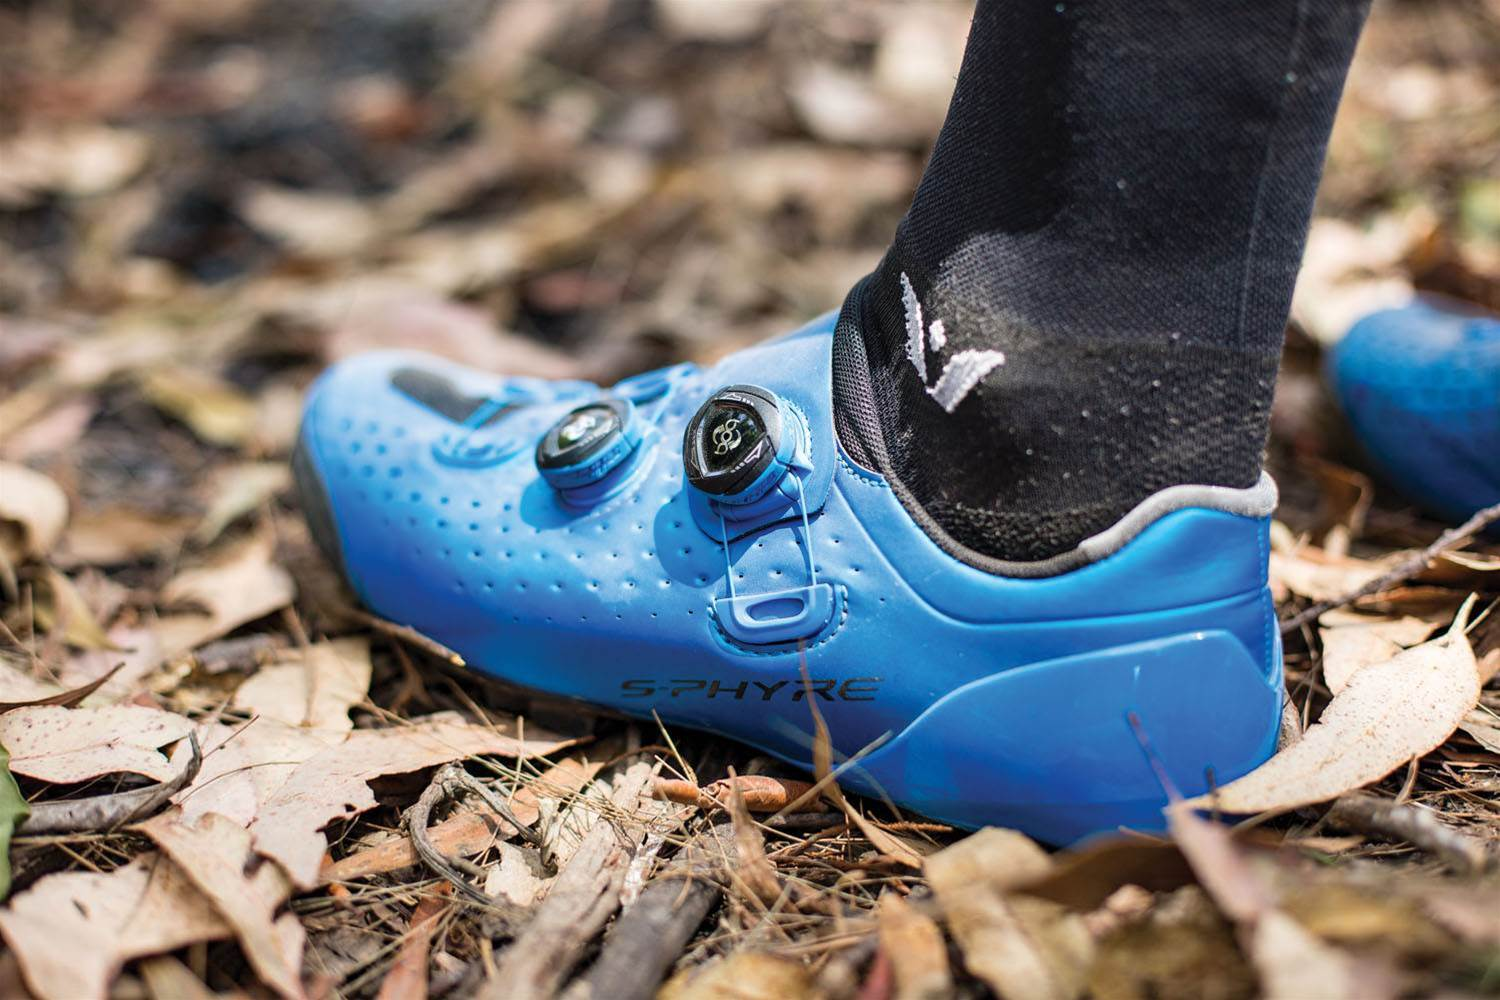 TESTED: Shimano S-Phyre XC9 shoes